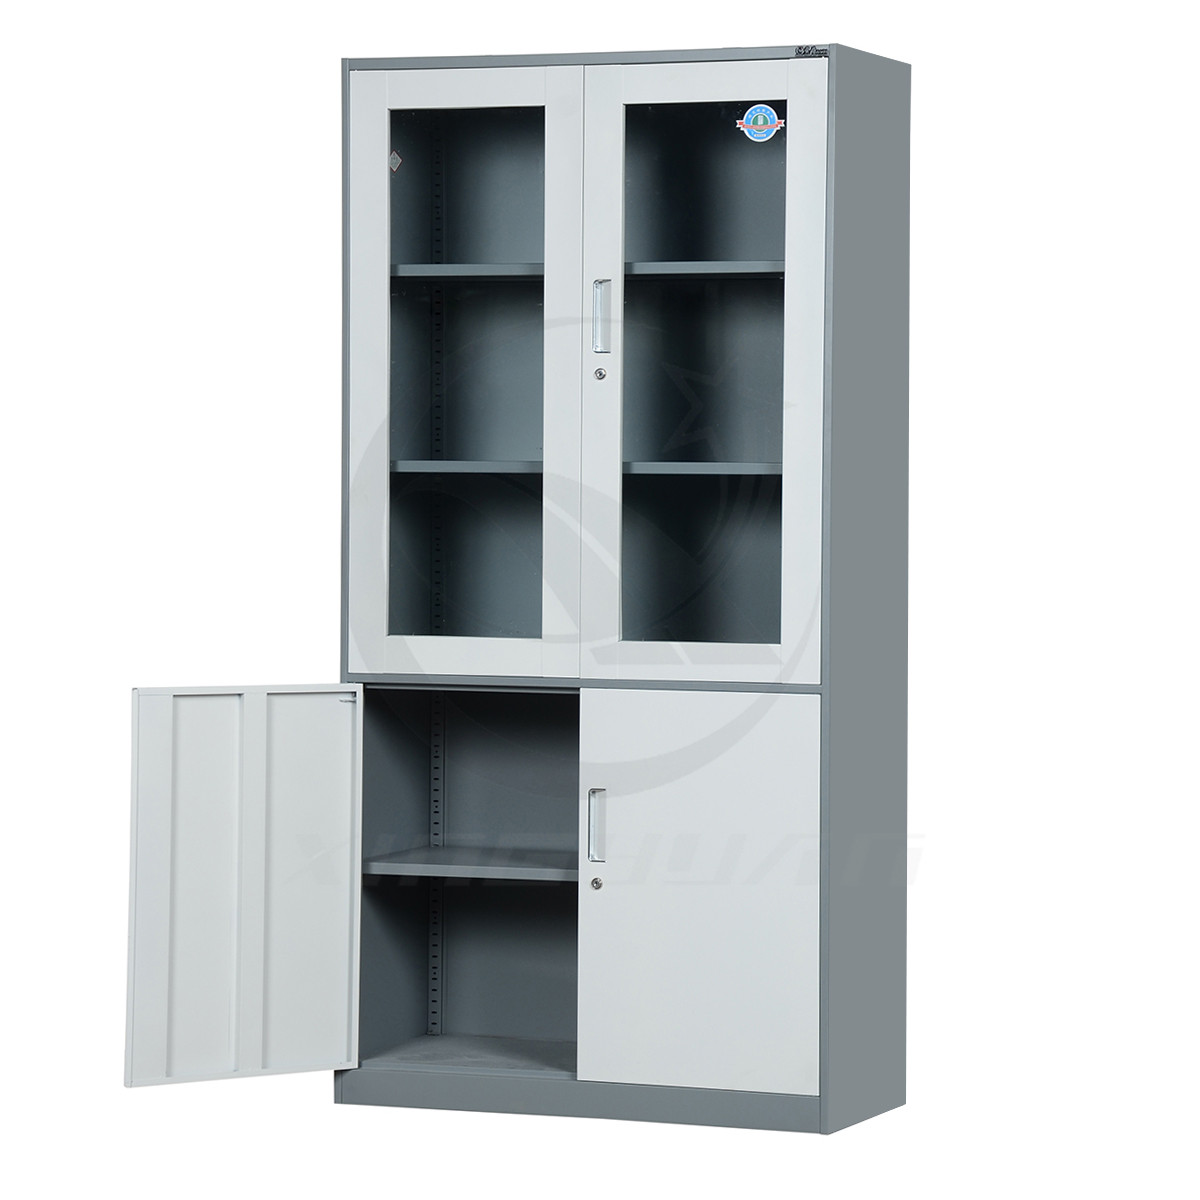 Made in China swing glass door steel hospital pharmacy cabinets